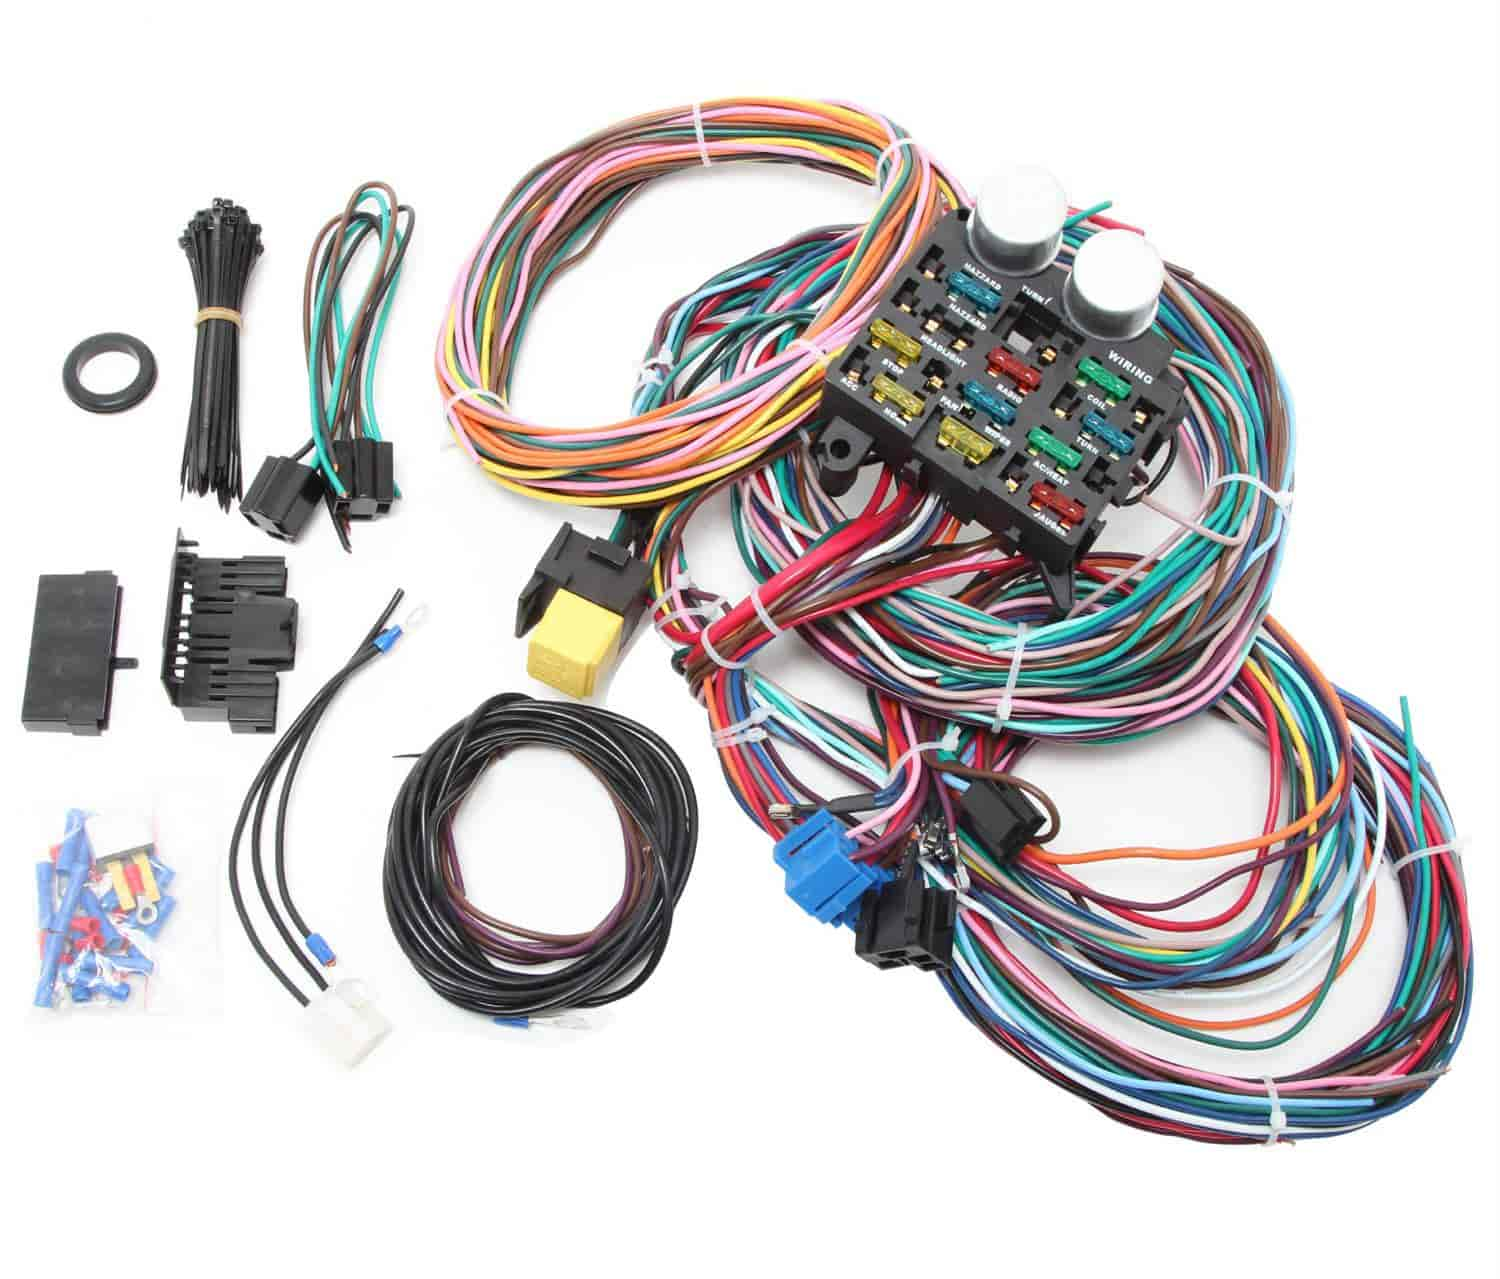 707 r1002x rpc r1002x universal 12 circuit wire harness kit jegs jegs universal wiring harness at nearapp.co